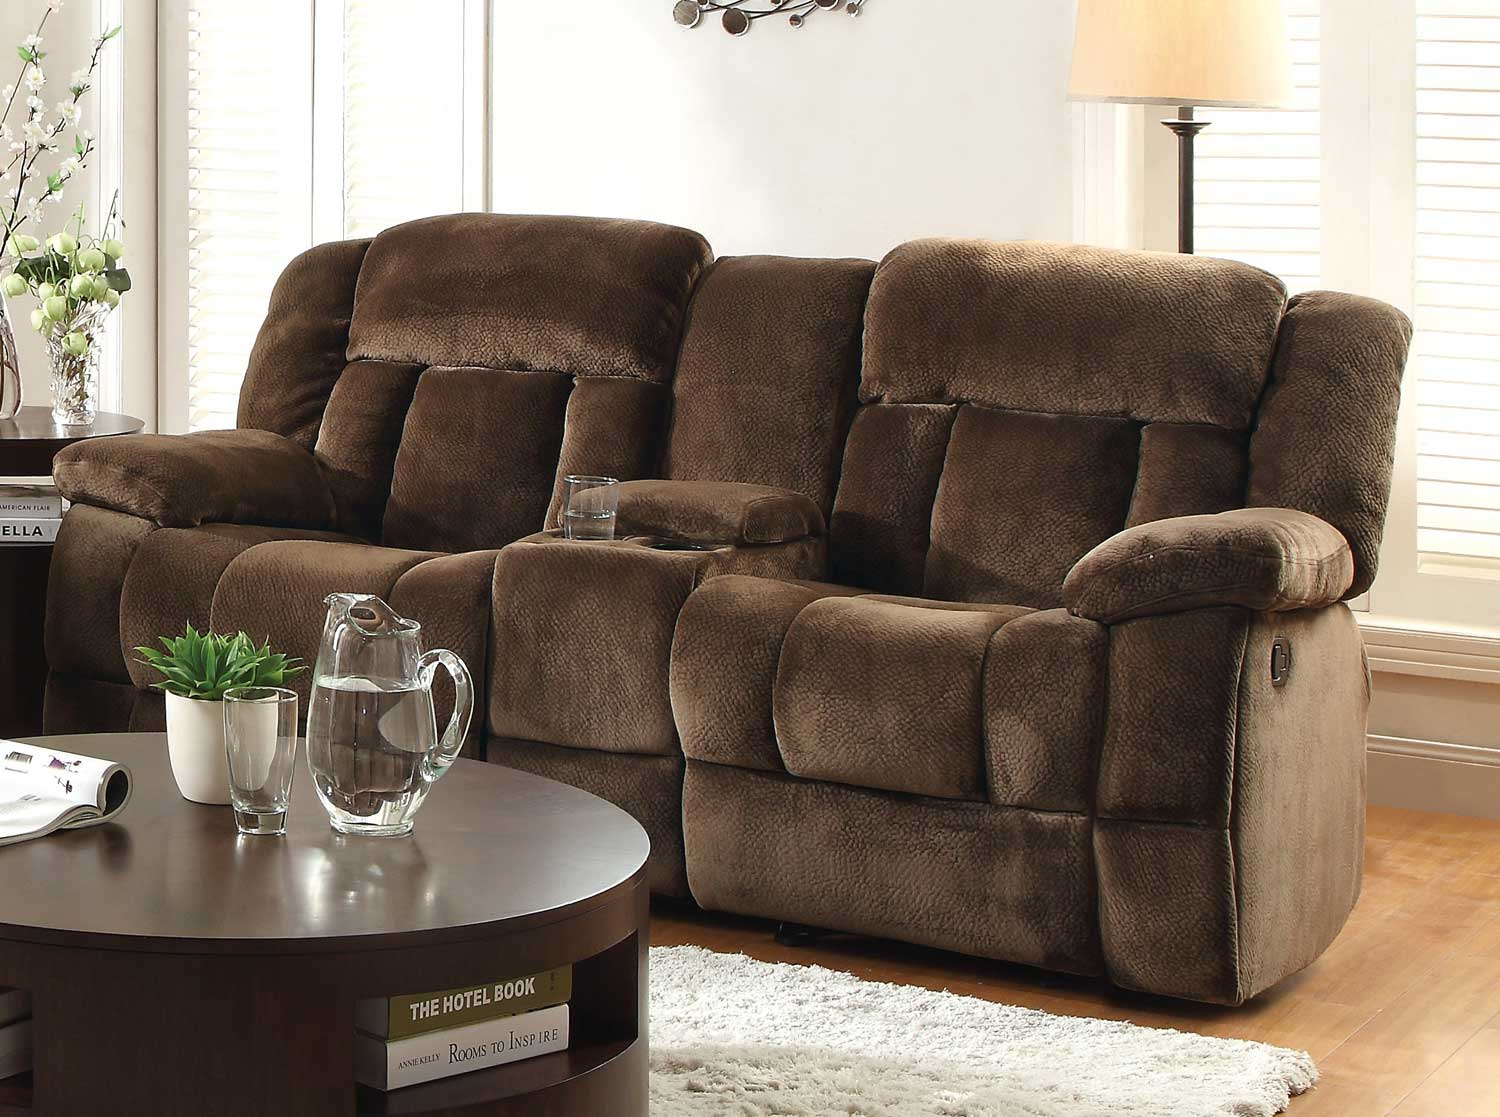 Homelegance Laurelton Double Glider Reclining Love Seat with Center Console - Chocolate - Textured Plush Microfiber